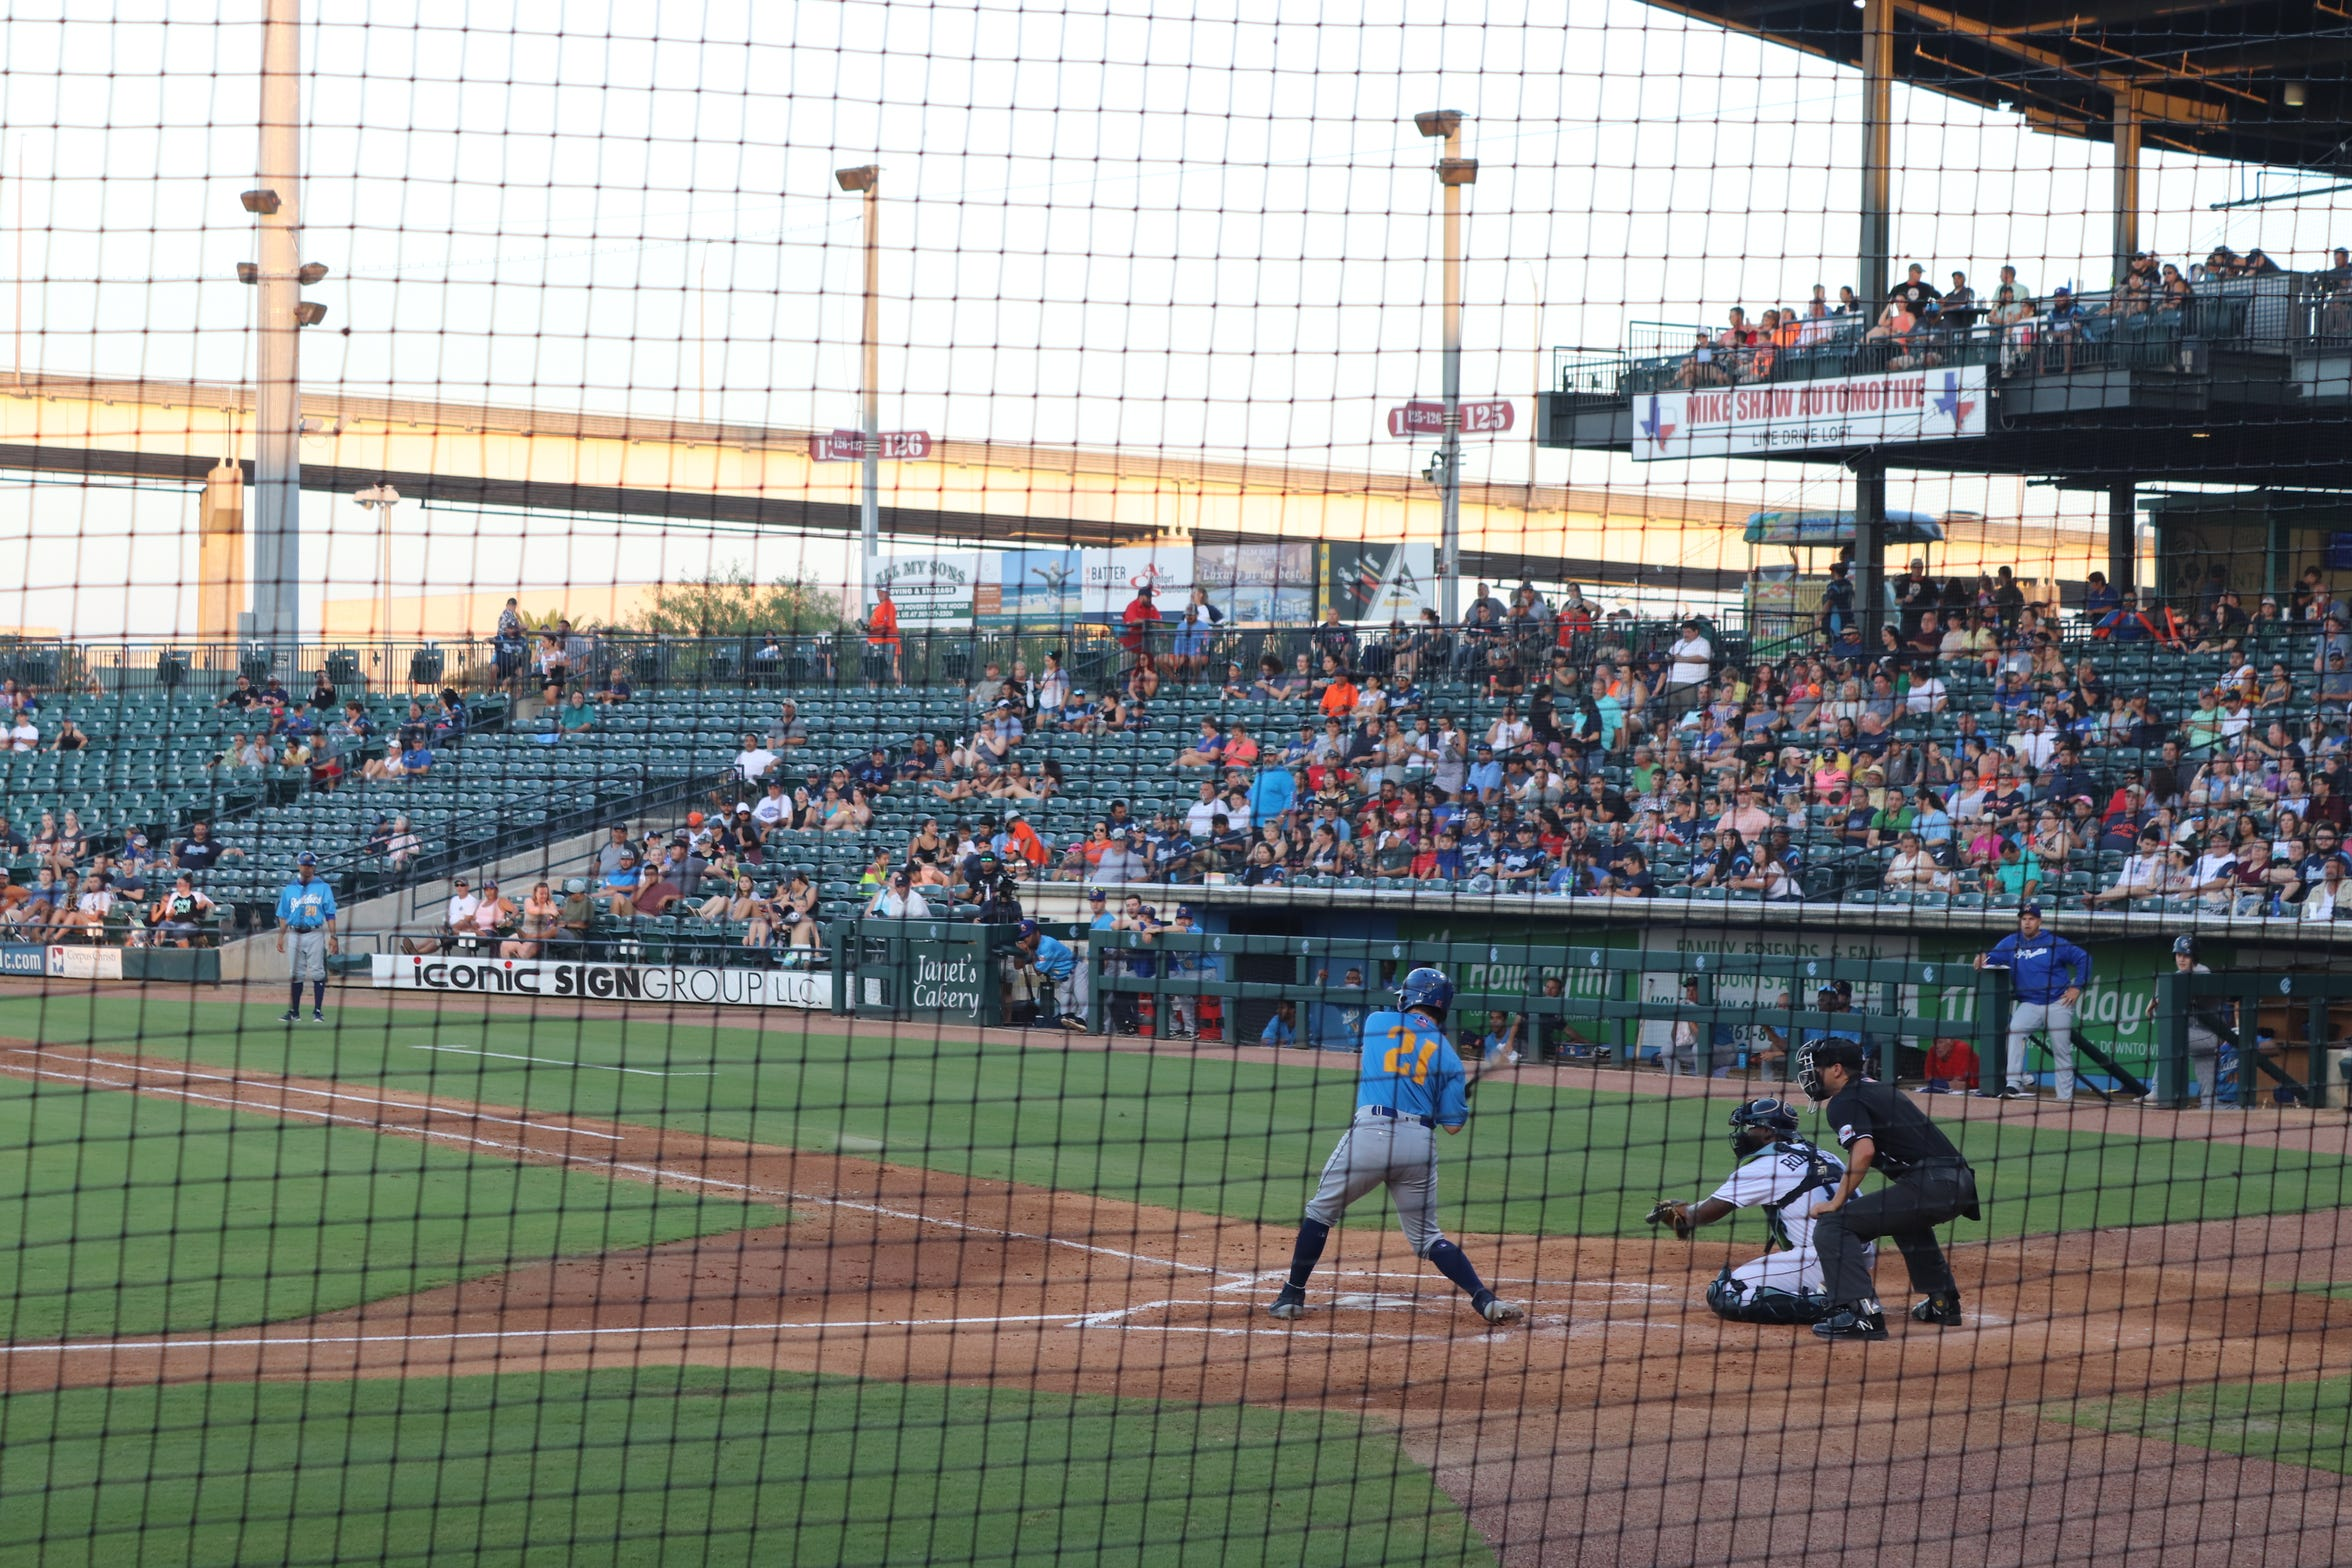 Pavel Alekseev, a journalist from Russia, took in his first baseball game in Corpus Christi, Texas.